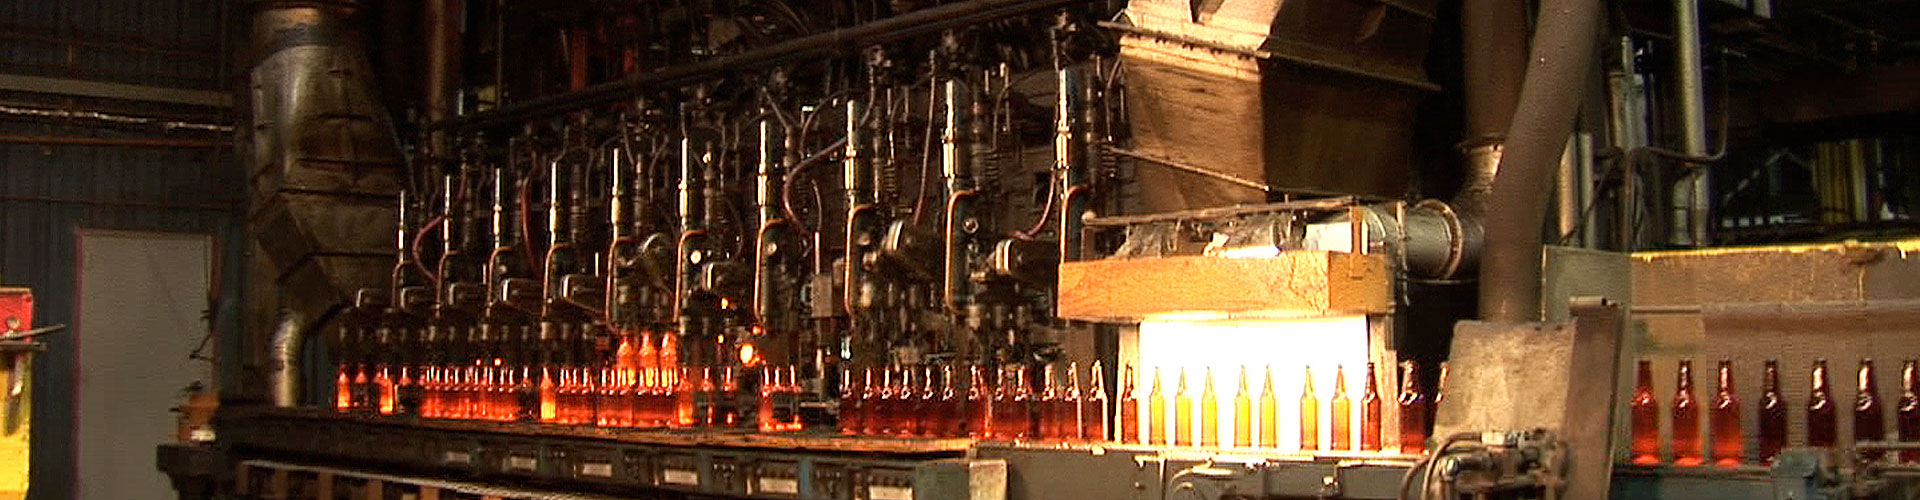 Bottle manufacturing facility